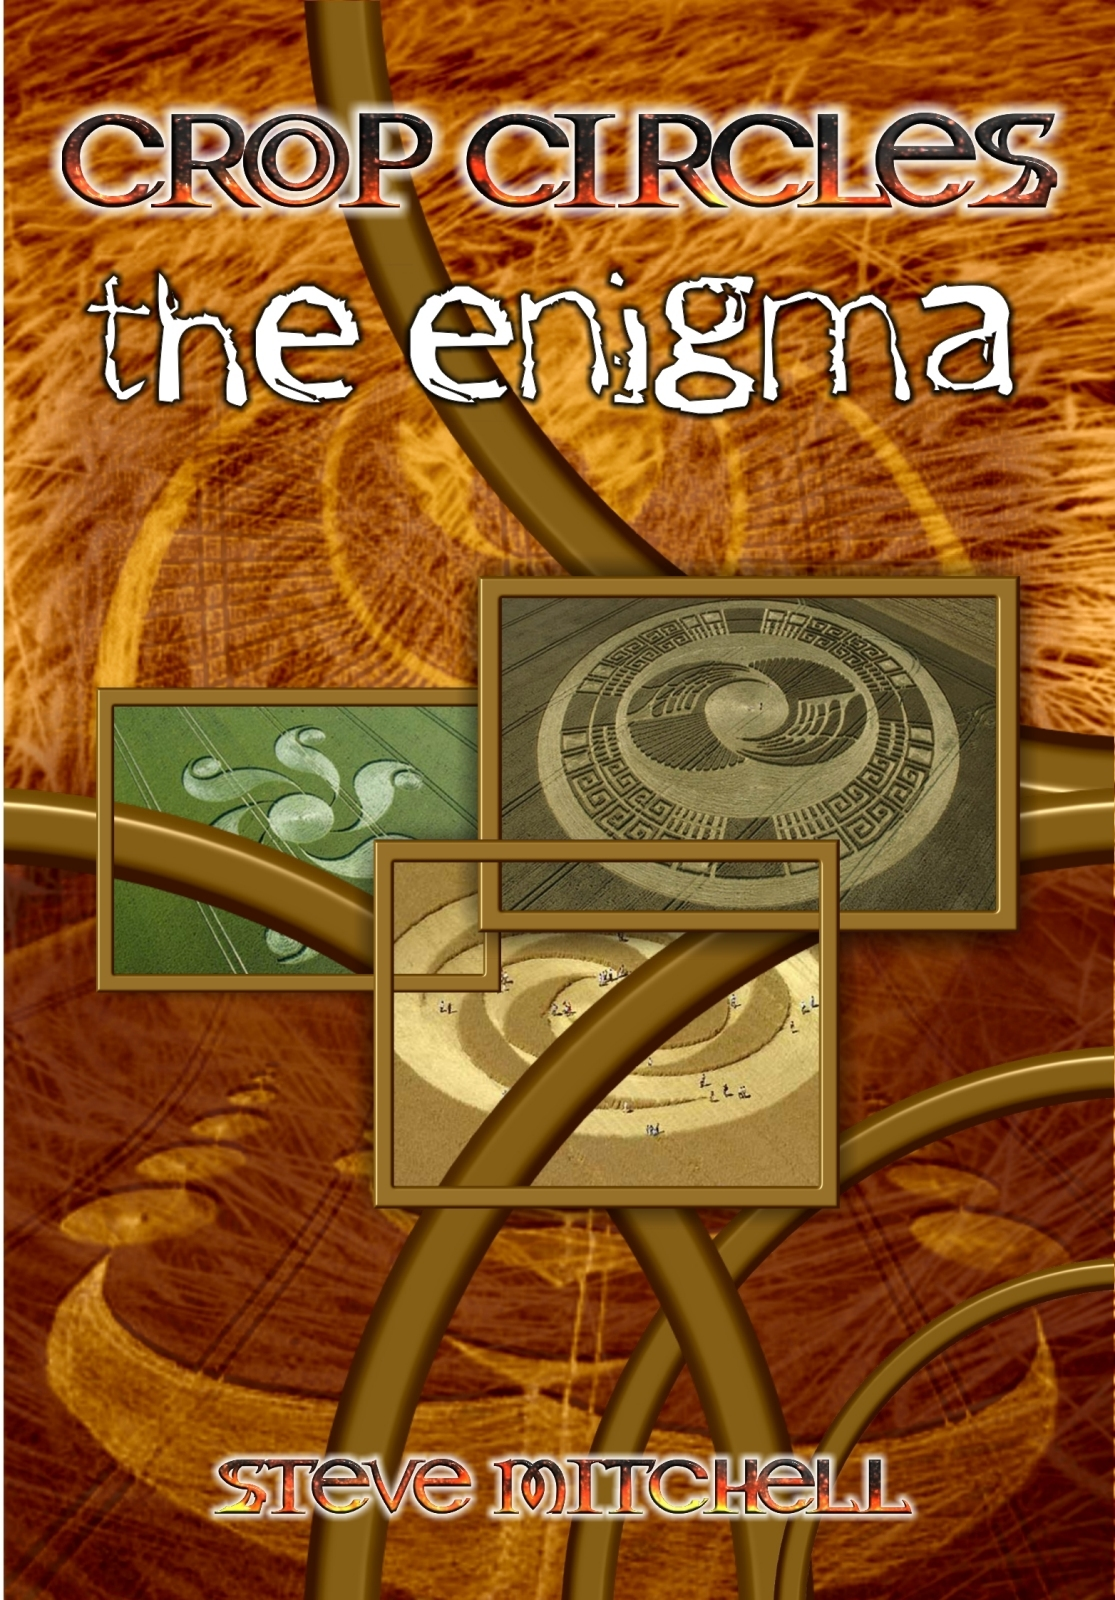 Crop Circles the Enigma